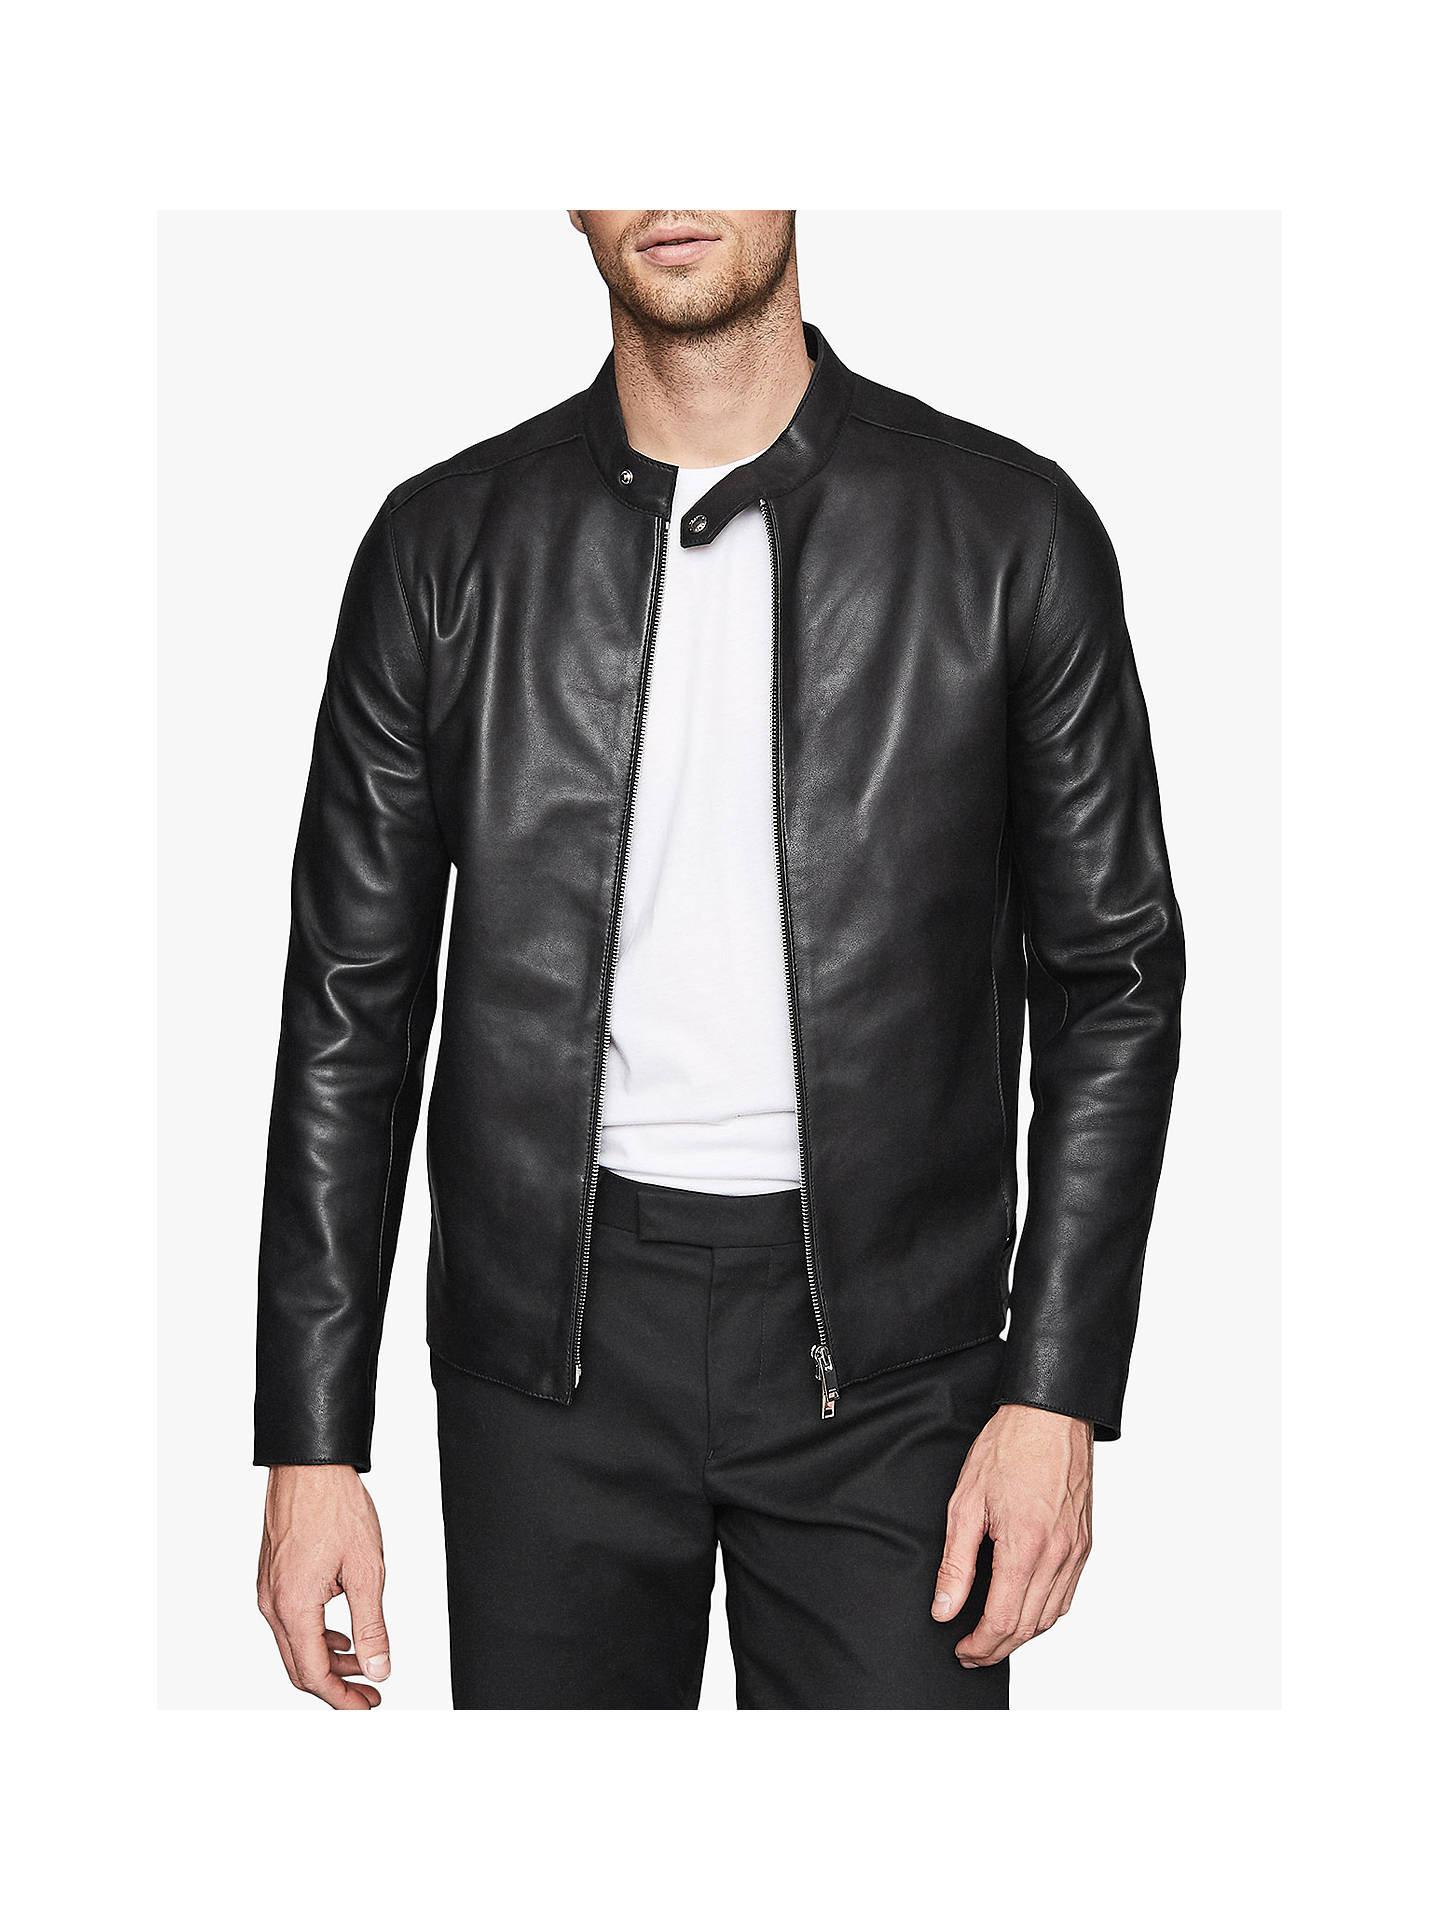 Reiss Keith Leather Cafe Racer Jacket, Black by Reiss